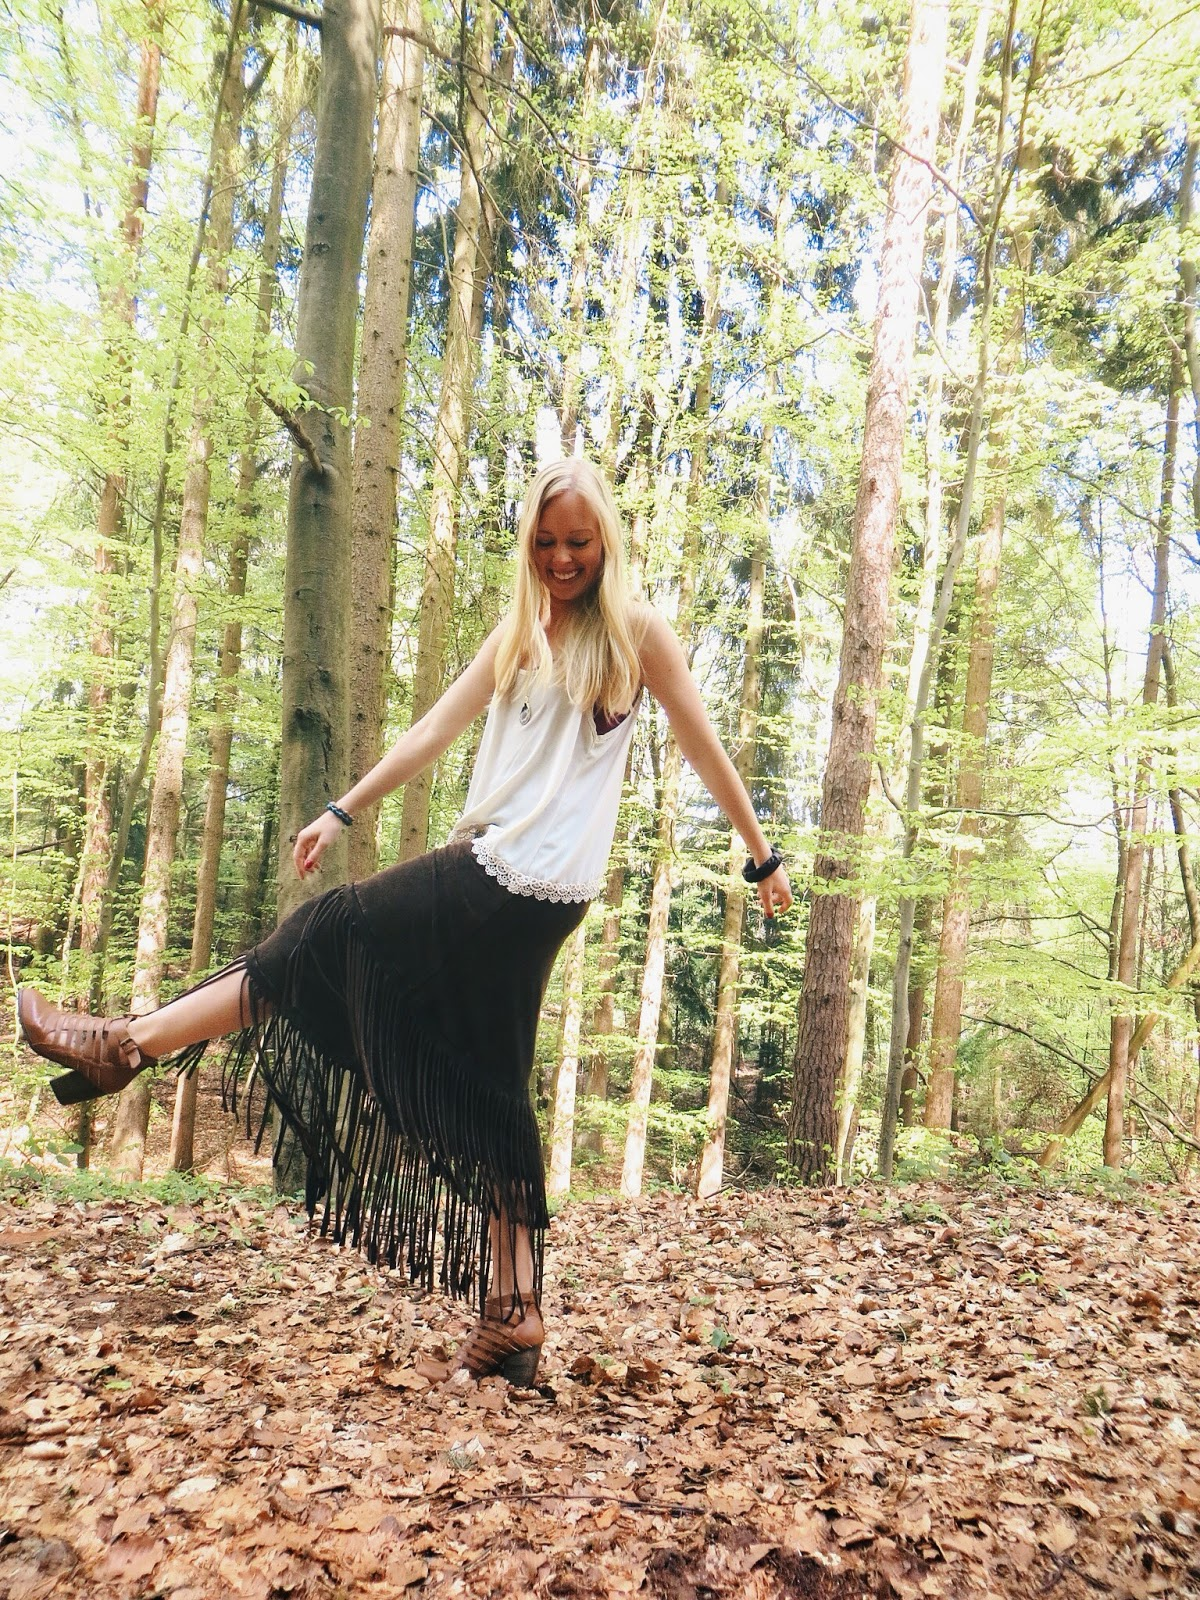 Song Yee Designs geode necklace, Deb crochet hem tank top, fringe maxi skirt, boho outfit, bohemian outfit, hippie outfit